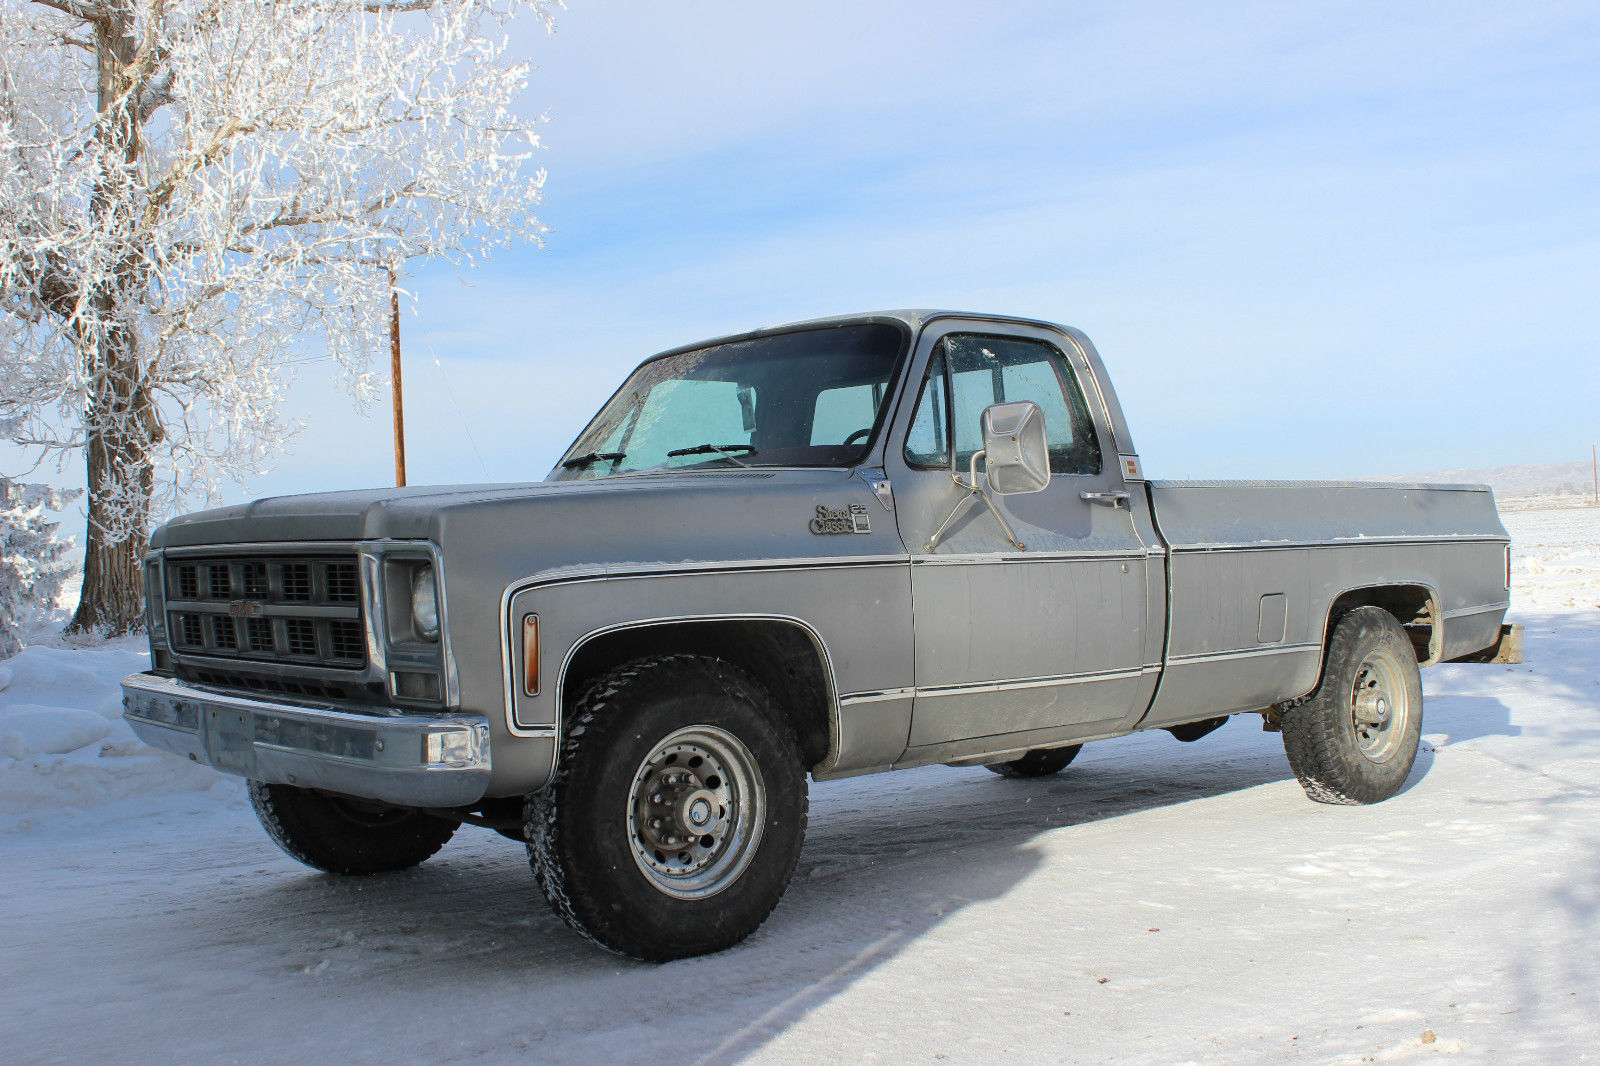 1979 GMC 3/4 Ton Sierra Classic, Silver, Single Cab, Red Int., 350, Auto, 2WD - Classic GMC ...